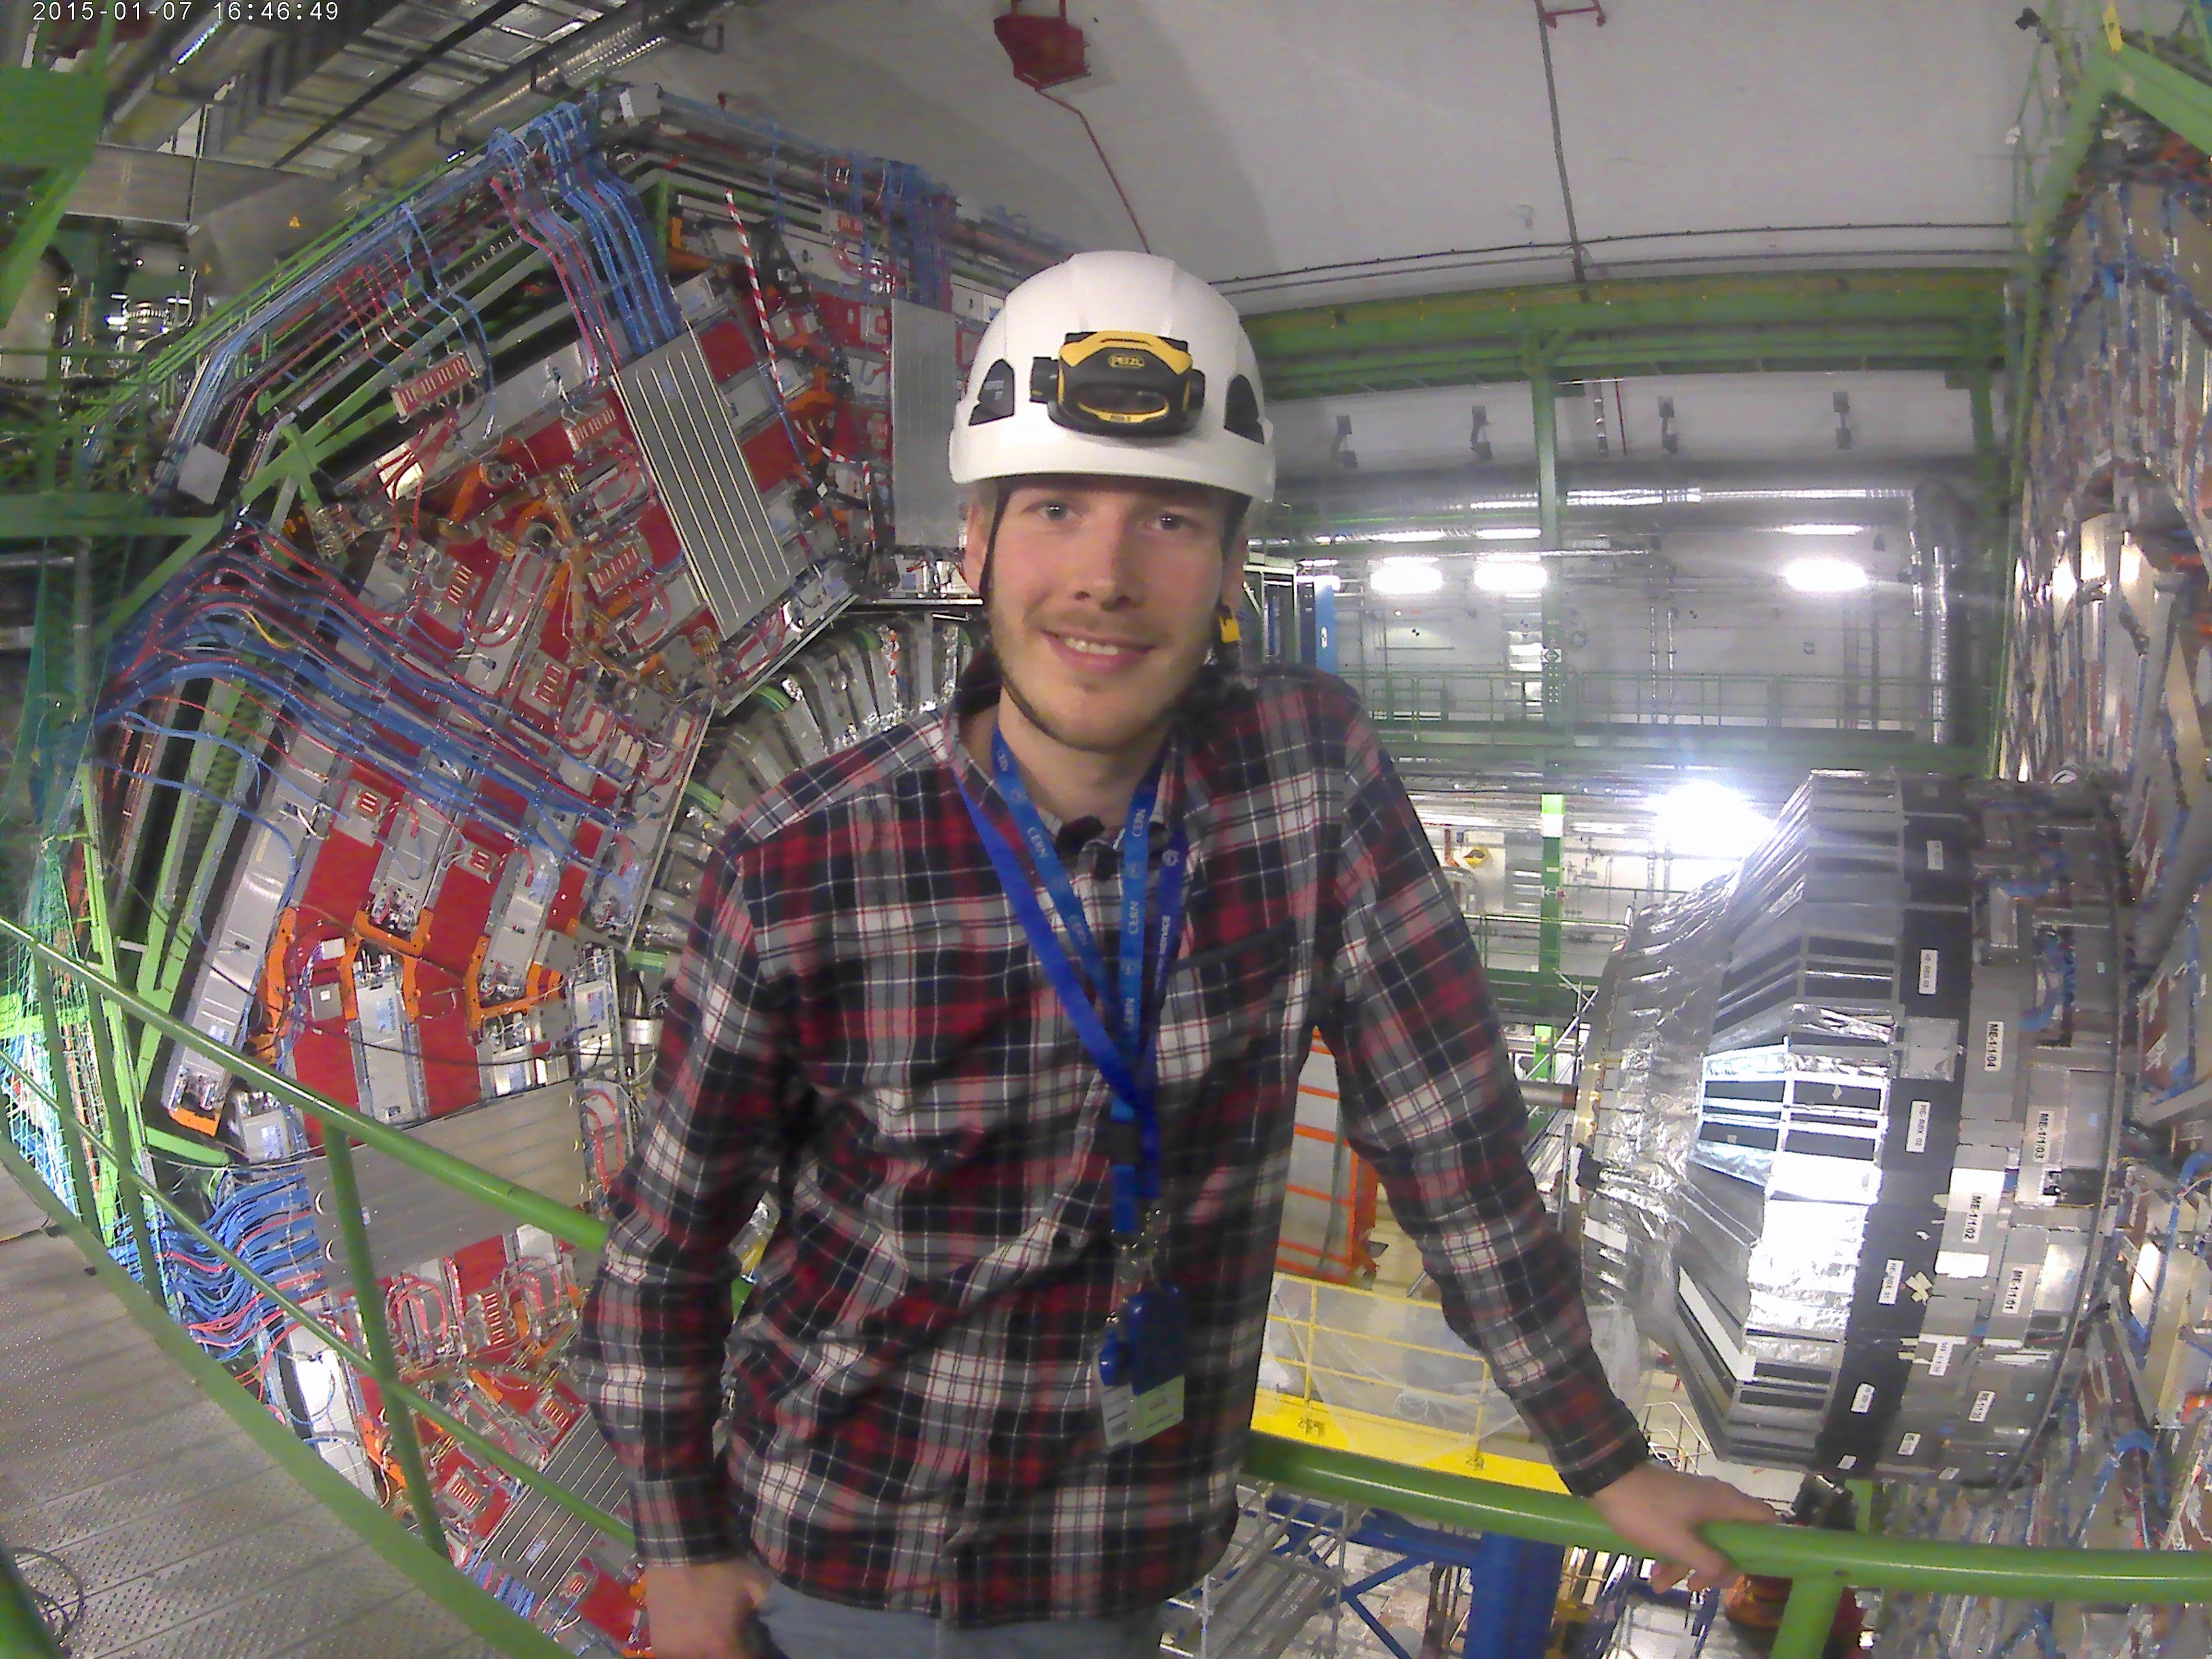 Myimpactstory  meet jacob aagaard former technical student at cern 427929ef 71b5 42fe 937c 9fb8c3a3d04b